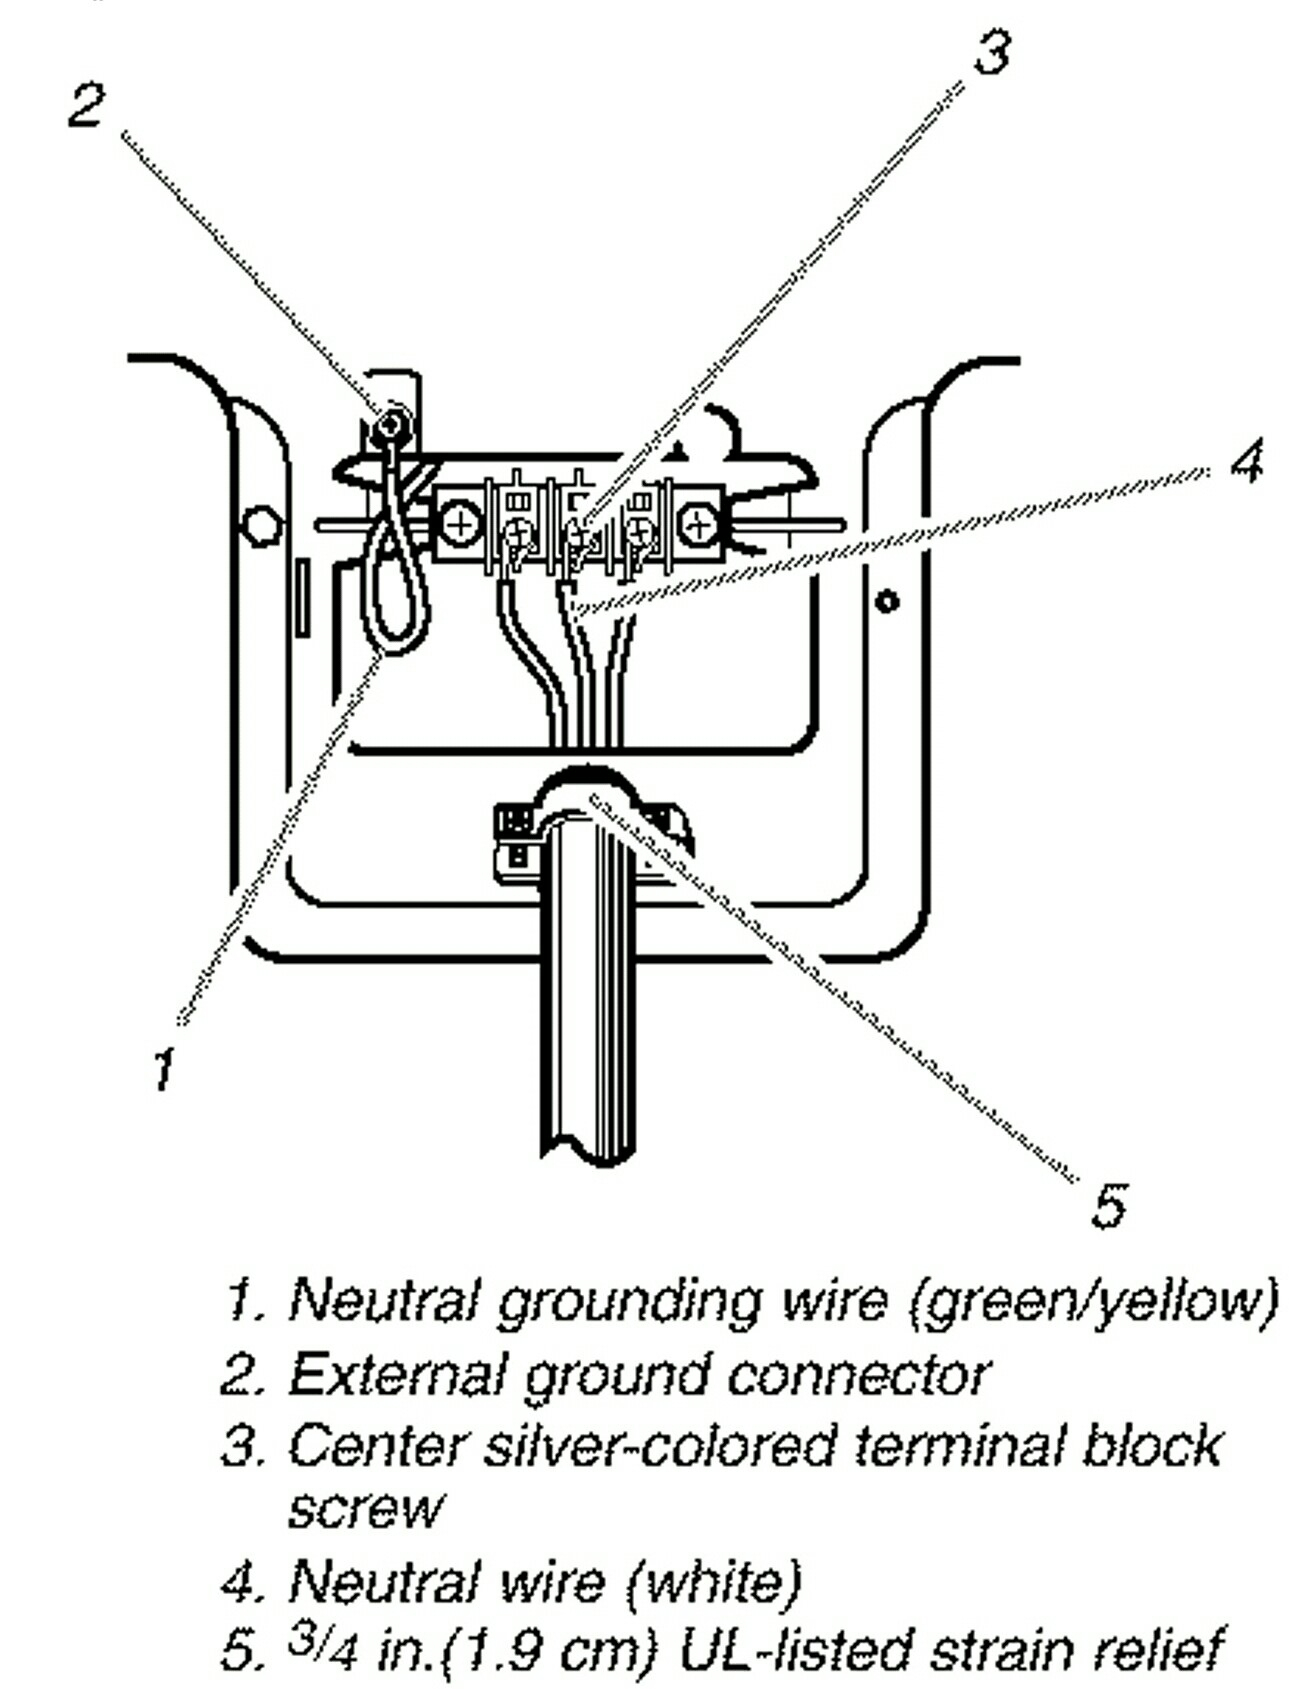 Cord And Plug - White Wire When Changing From 4 Prong To 3 On Dryer - 3 Prong Plug Wiring Diagram